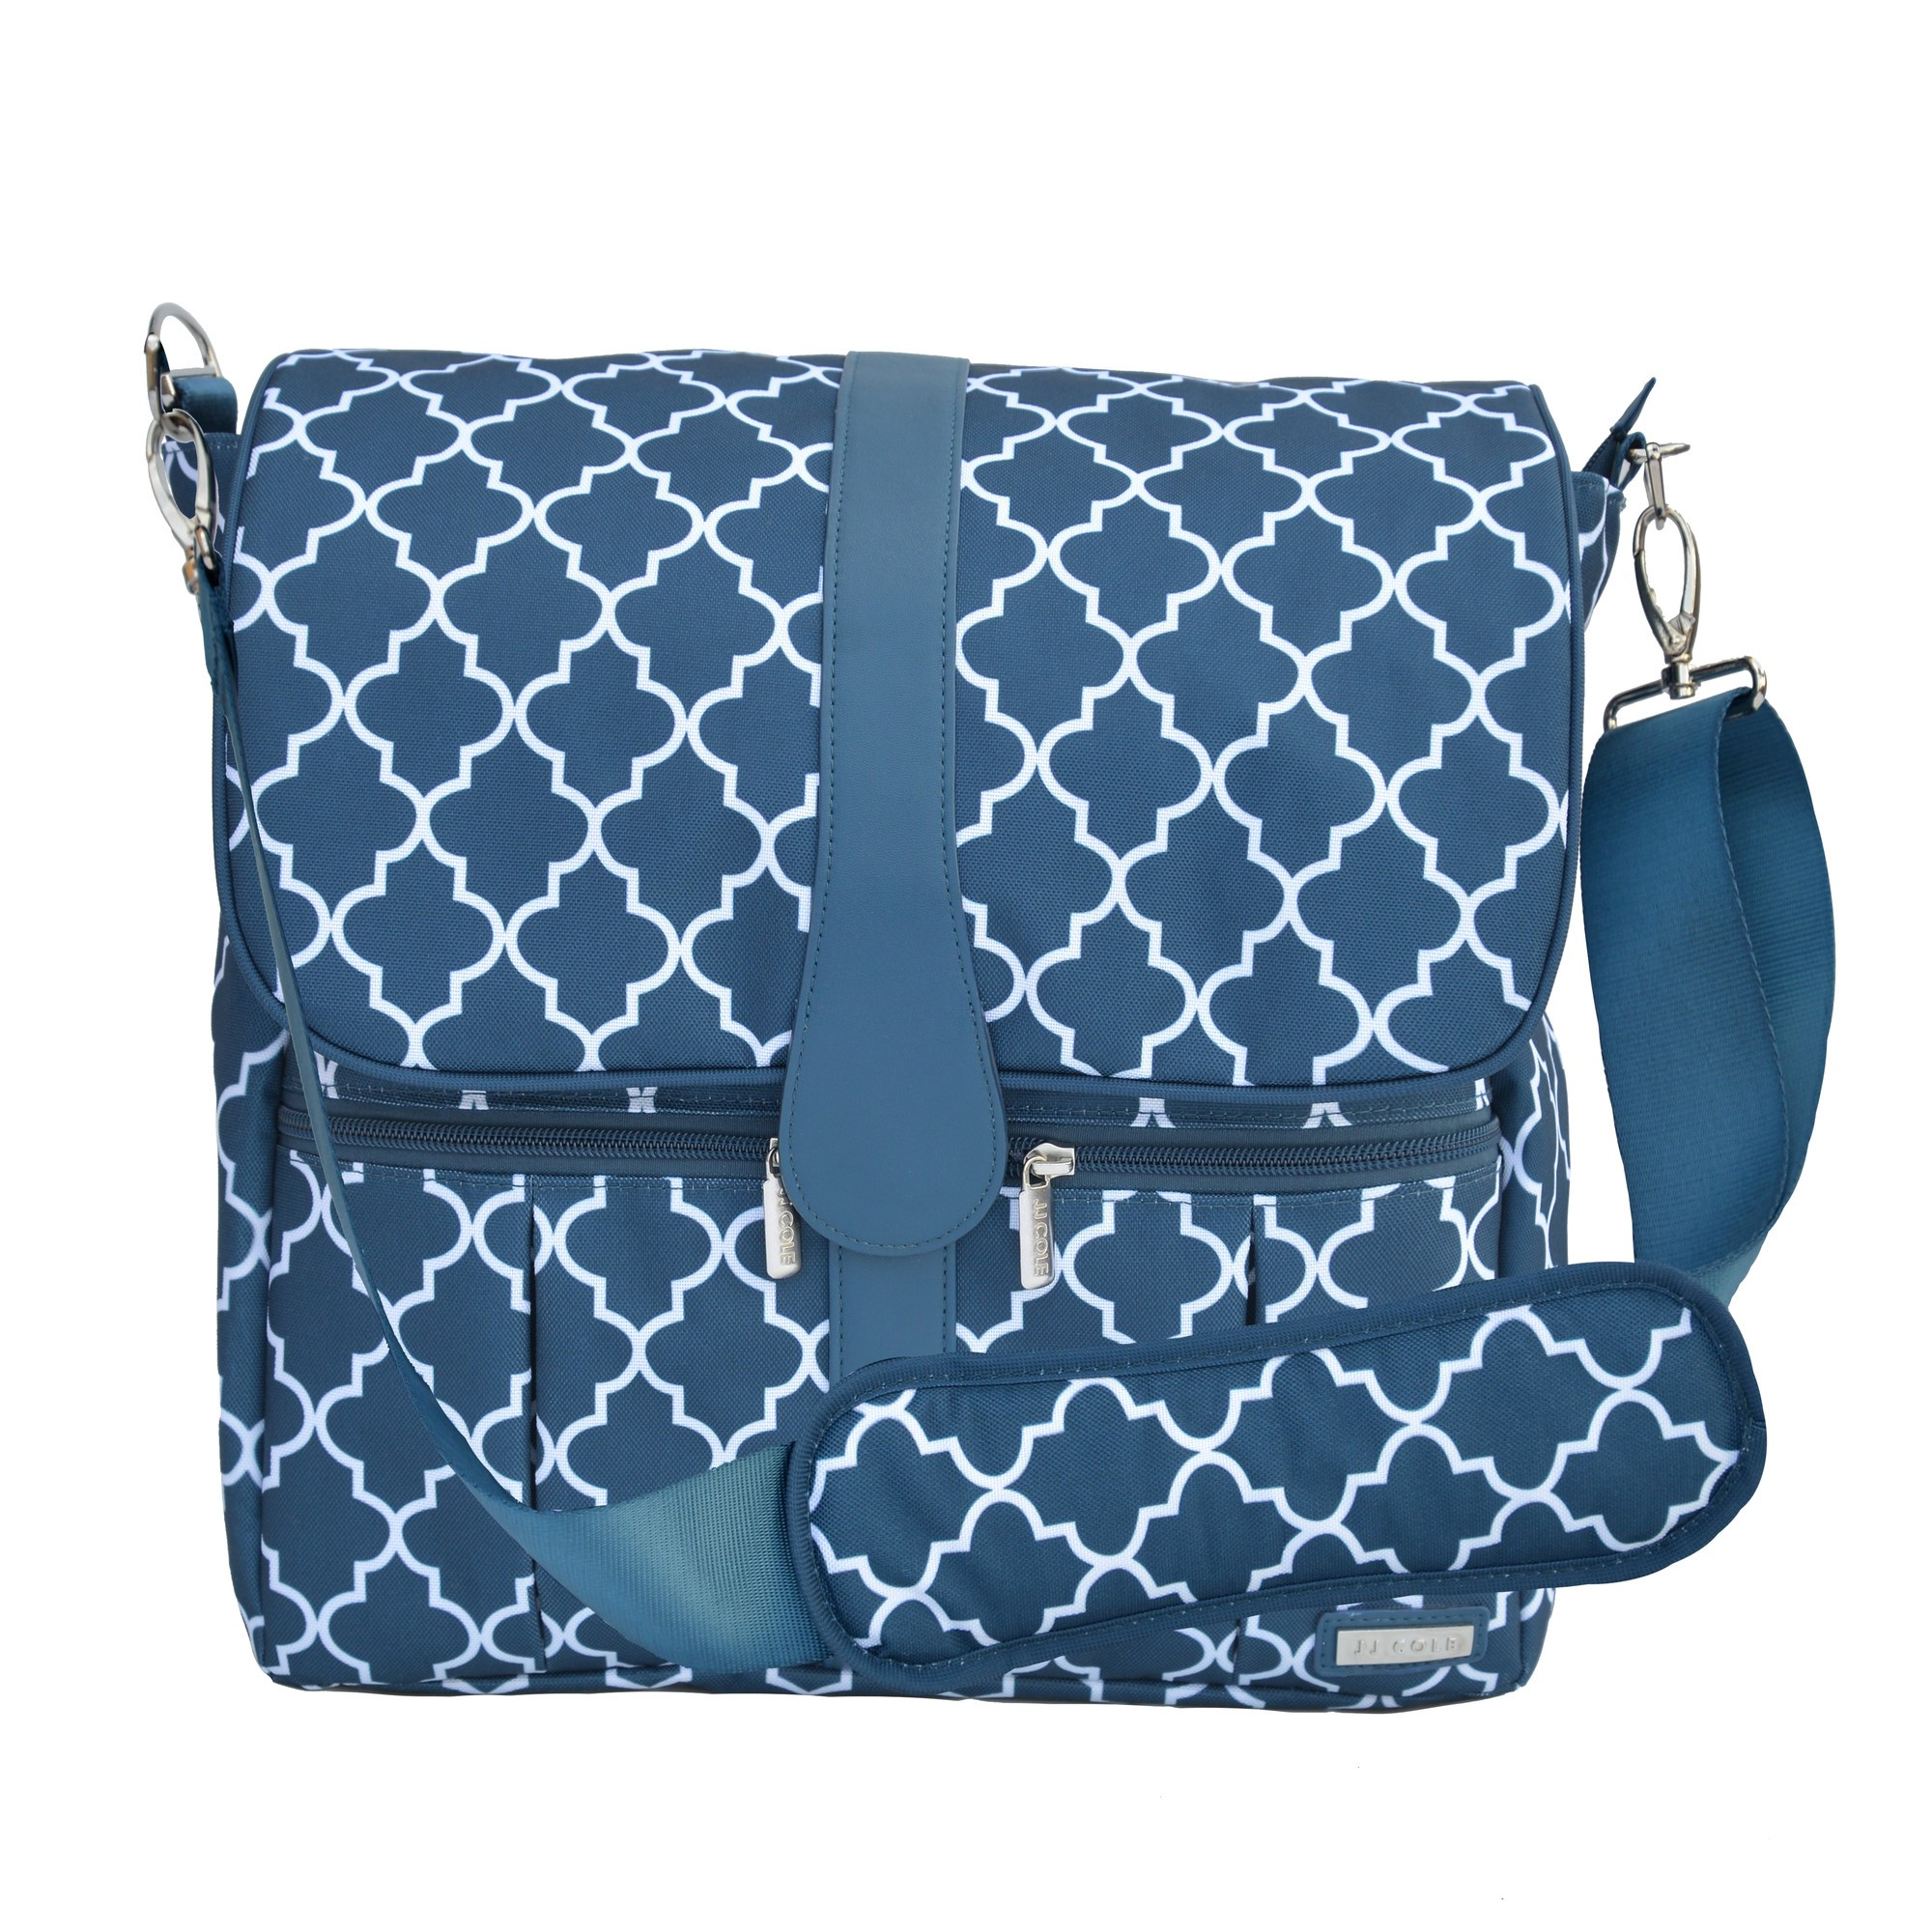 JJ COLE Backpack Diaper Bag - Navy Arbor